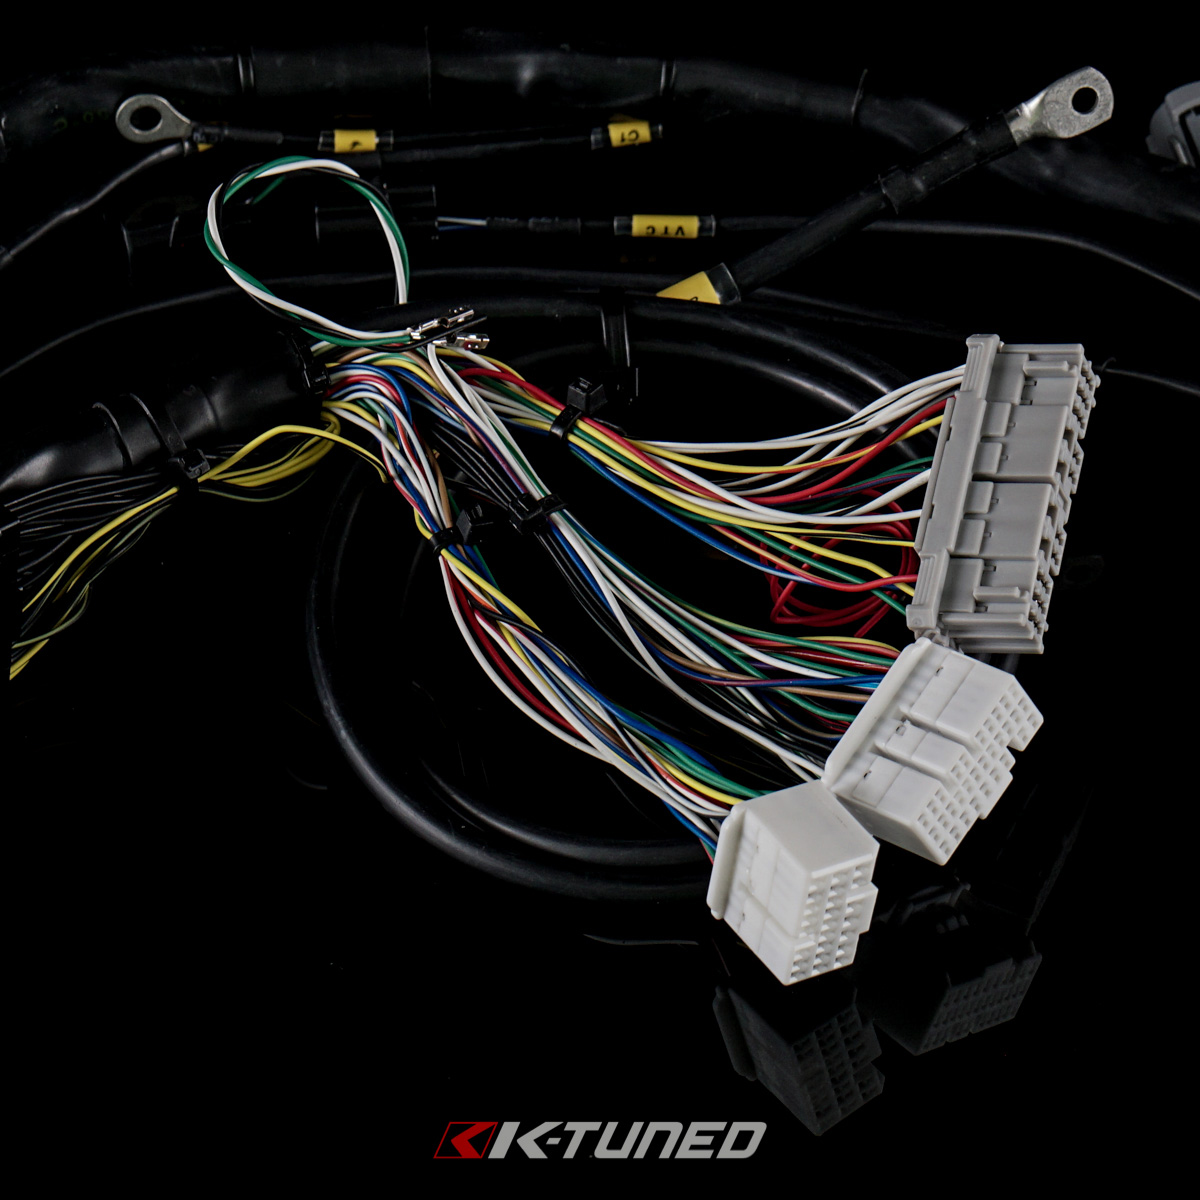 K Series Tucked Engine Harness Wiring Types Quick View